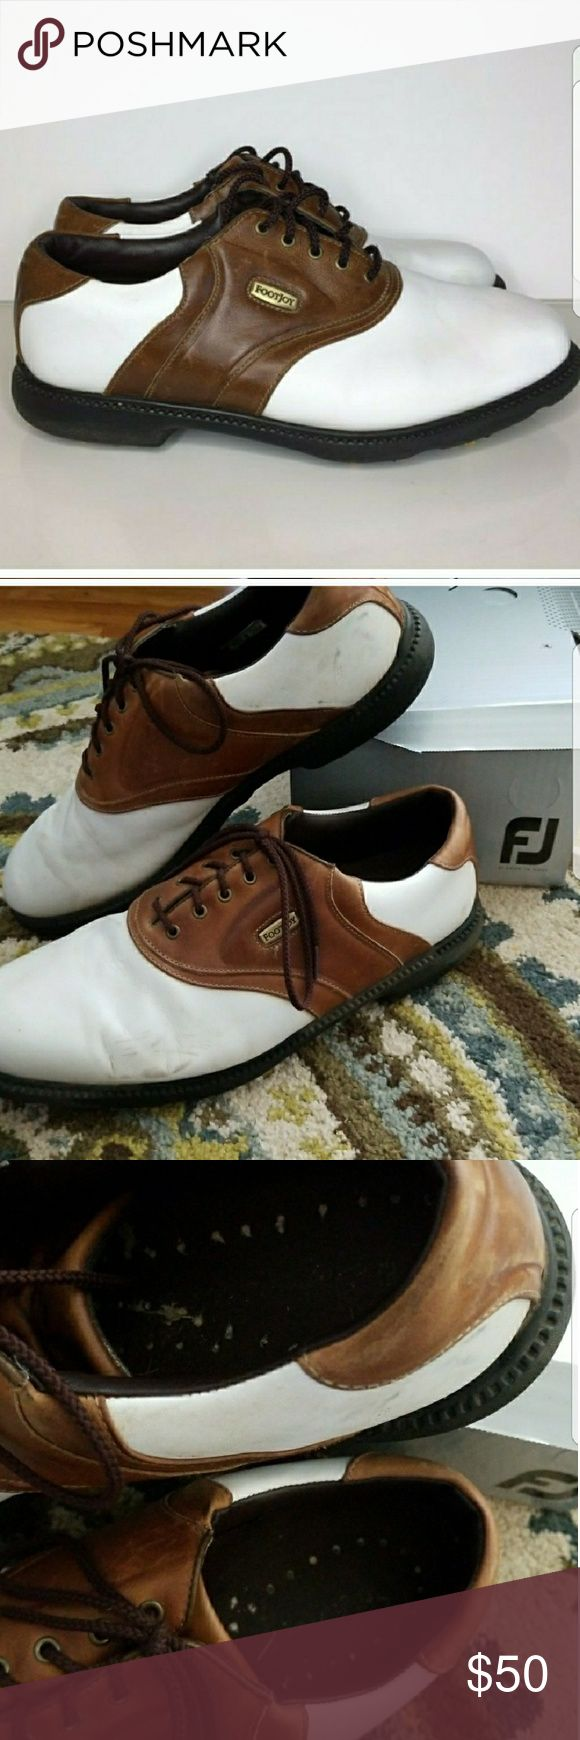 Foot Joy Superlites Mens Golf Shoe sz 12 White and brown mens golf shoes.  Style # 58049 Worn a few times some wear on whites but in good shape. Has cleats on bottom with some wear.  Great for Fathers Day! I Have several pairs of sz 12 golf shoes feel free to ask questions and I am more than happy to bundle or discount! Shoes Athletic Shoes